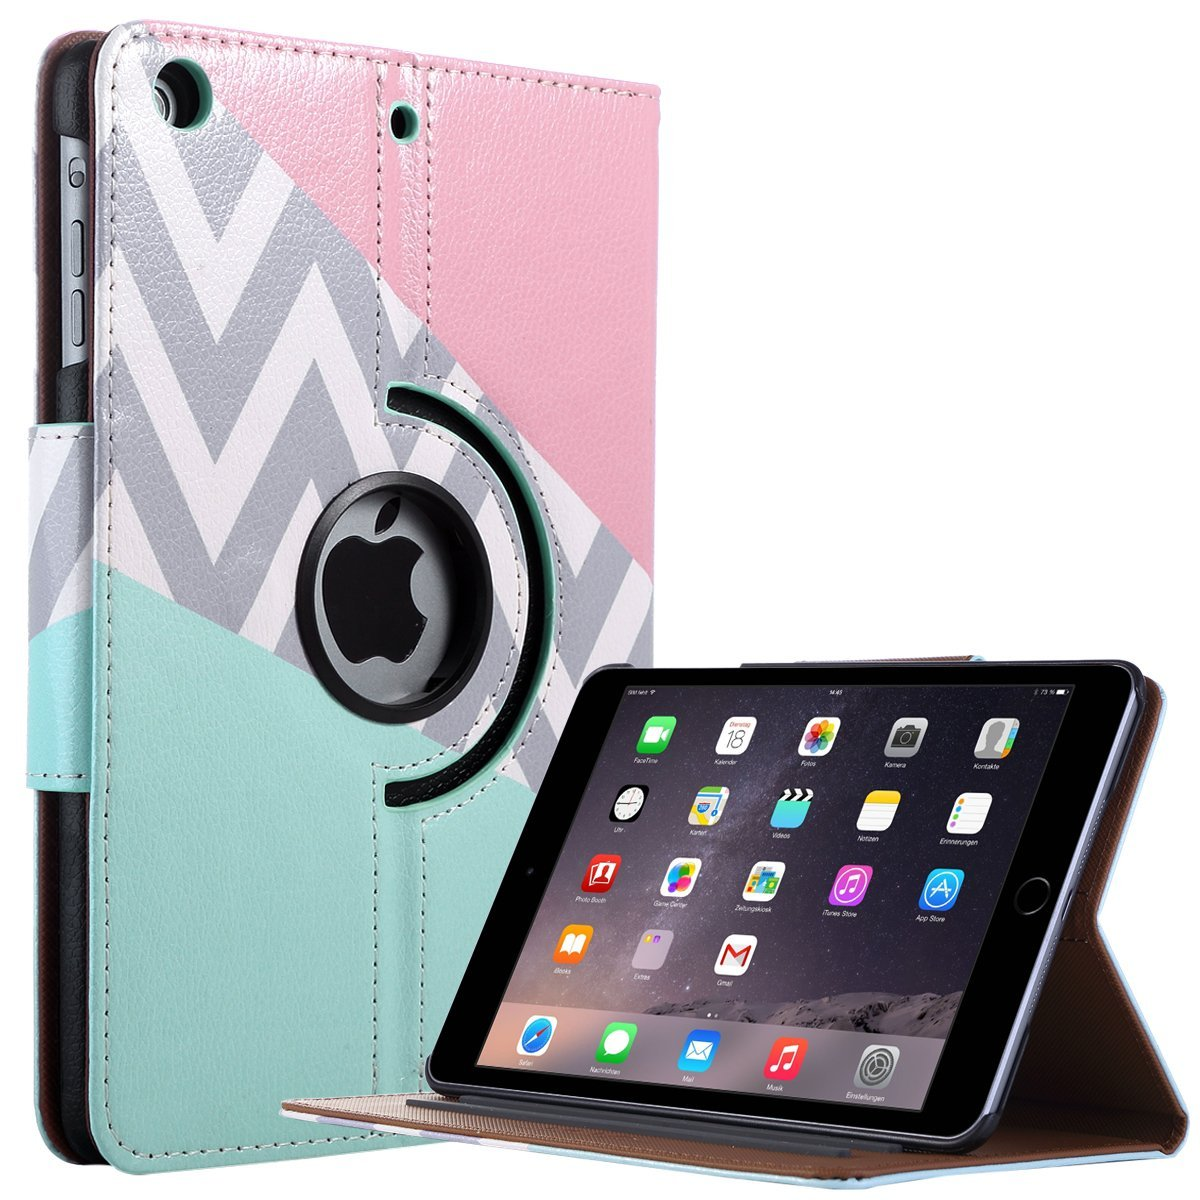 iPad Mini Case,iPad Mini 2 Case,iPad Mini 3 Case,iPad Mini Retina Case,ULAK 360 Degree Rotating Synthetic Leather Case Cover for Apple iPad Mini 1/2/3 with Auto Sleep/Wake Function(Pink/Mint)